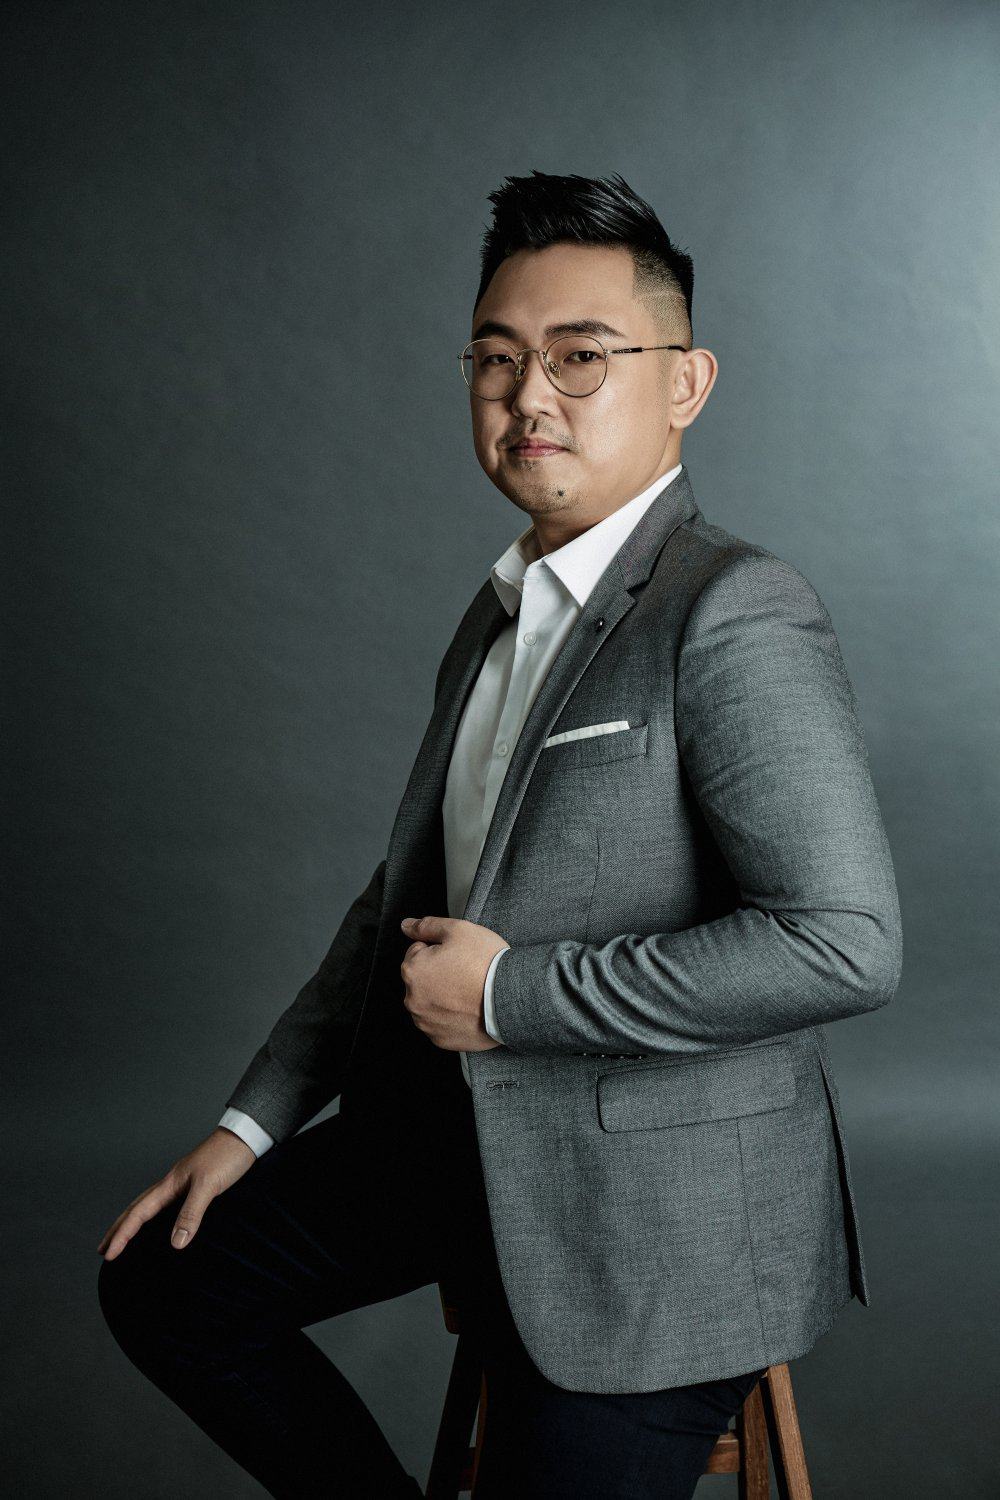 kingssleeve interview Johnny Wong founder of breakout suit - Johnny Ong: Success Is Not One's Alone